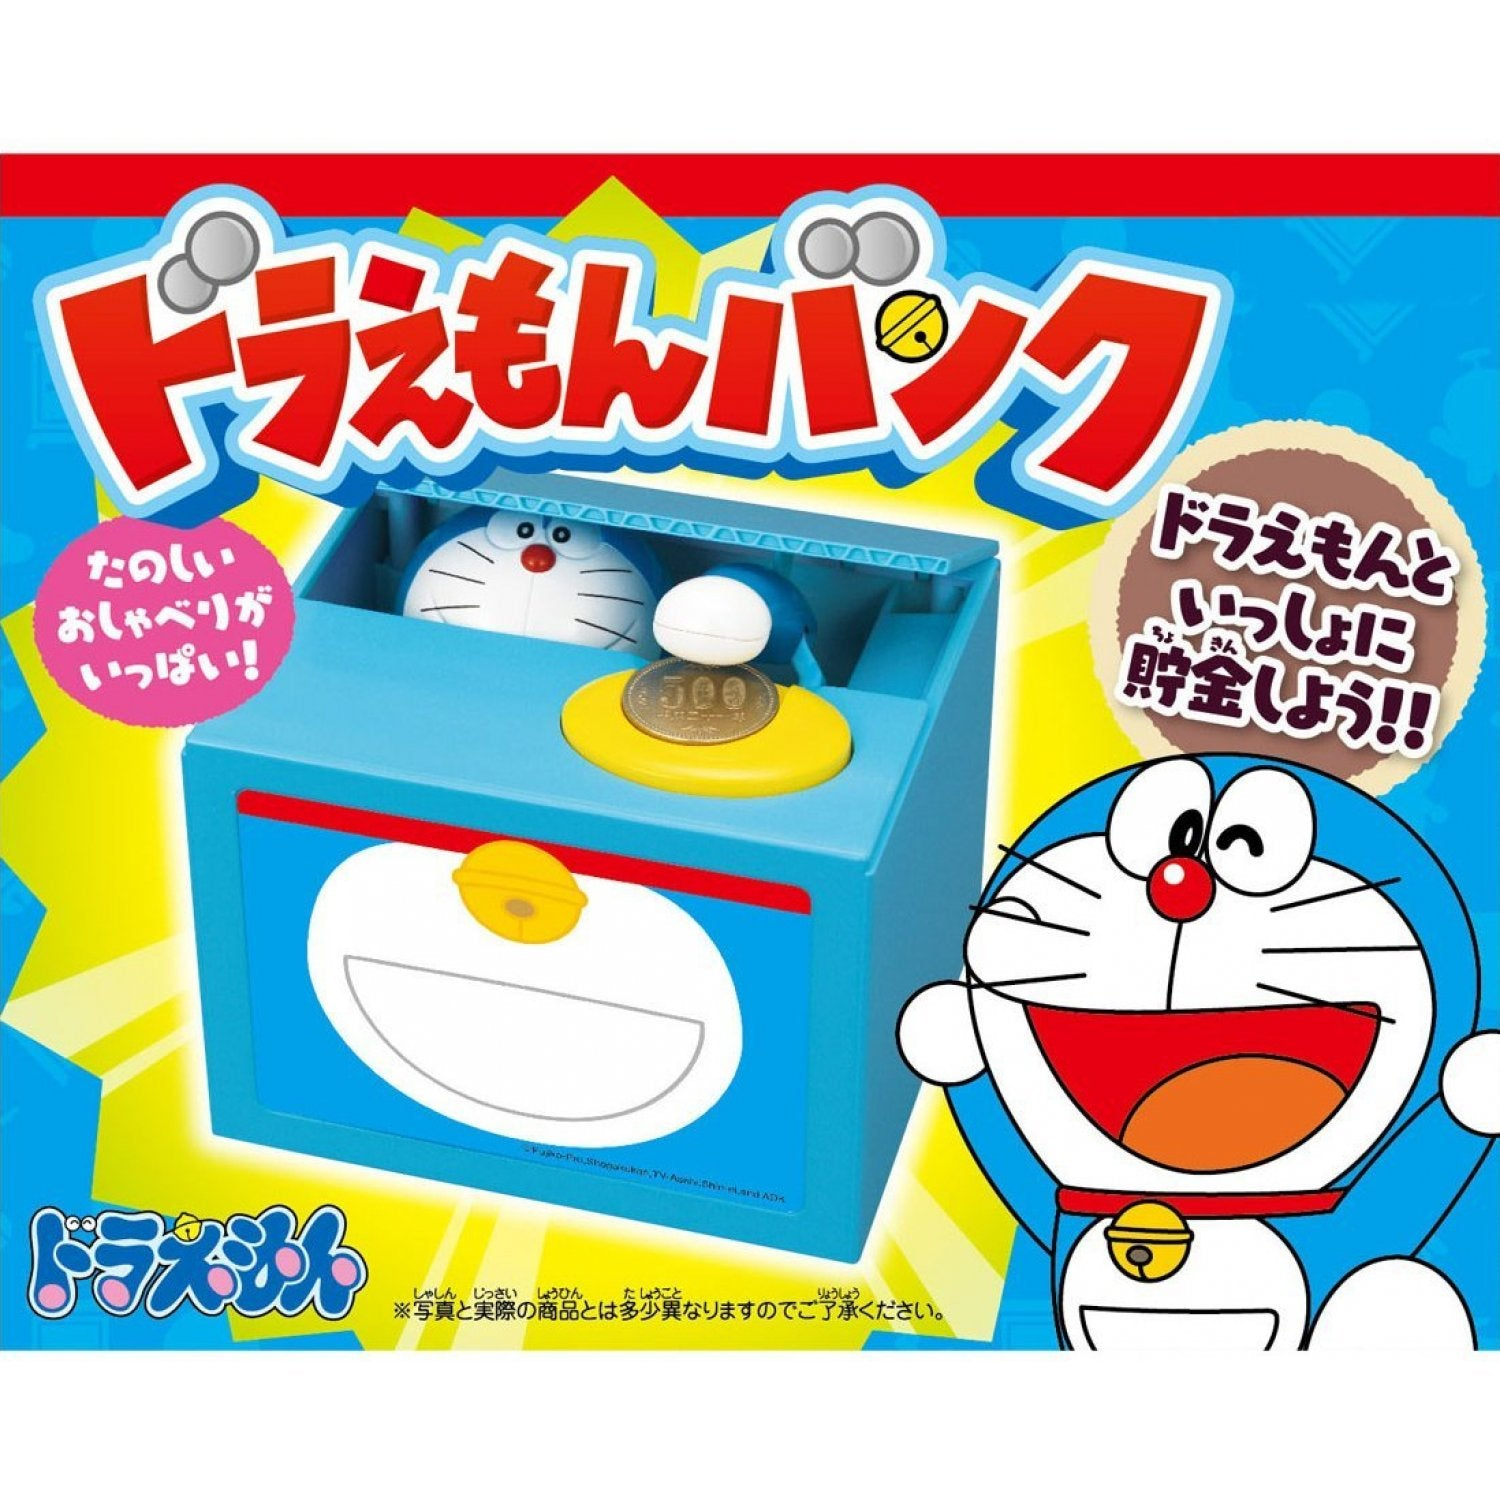 Shine - Doraemon Coin Bank